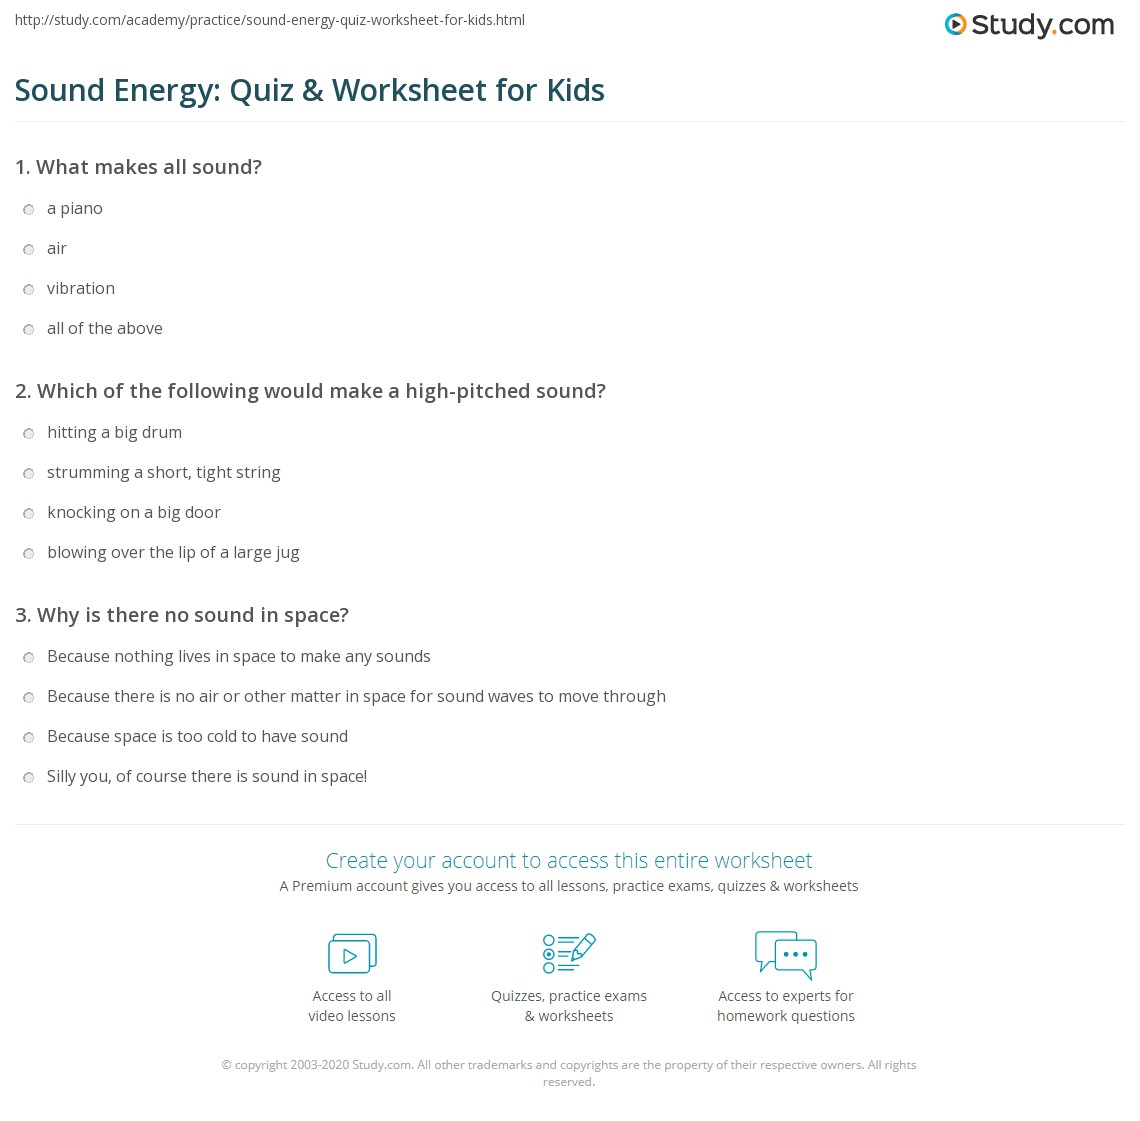 Workbooks sound energy worksheets : Sound Energy: Quiz & Worksheet for Kids | Study.com